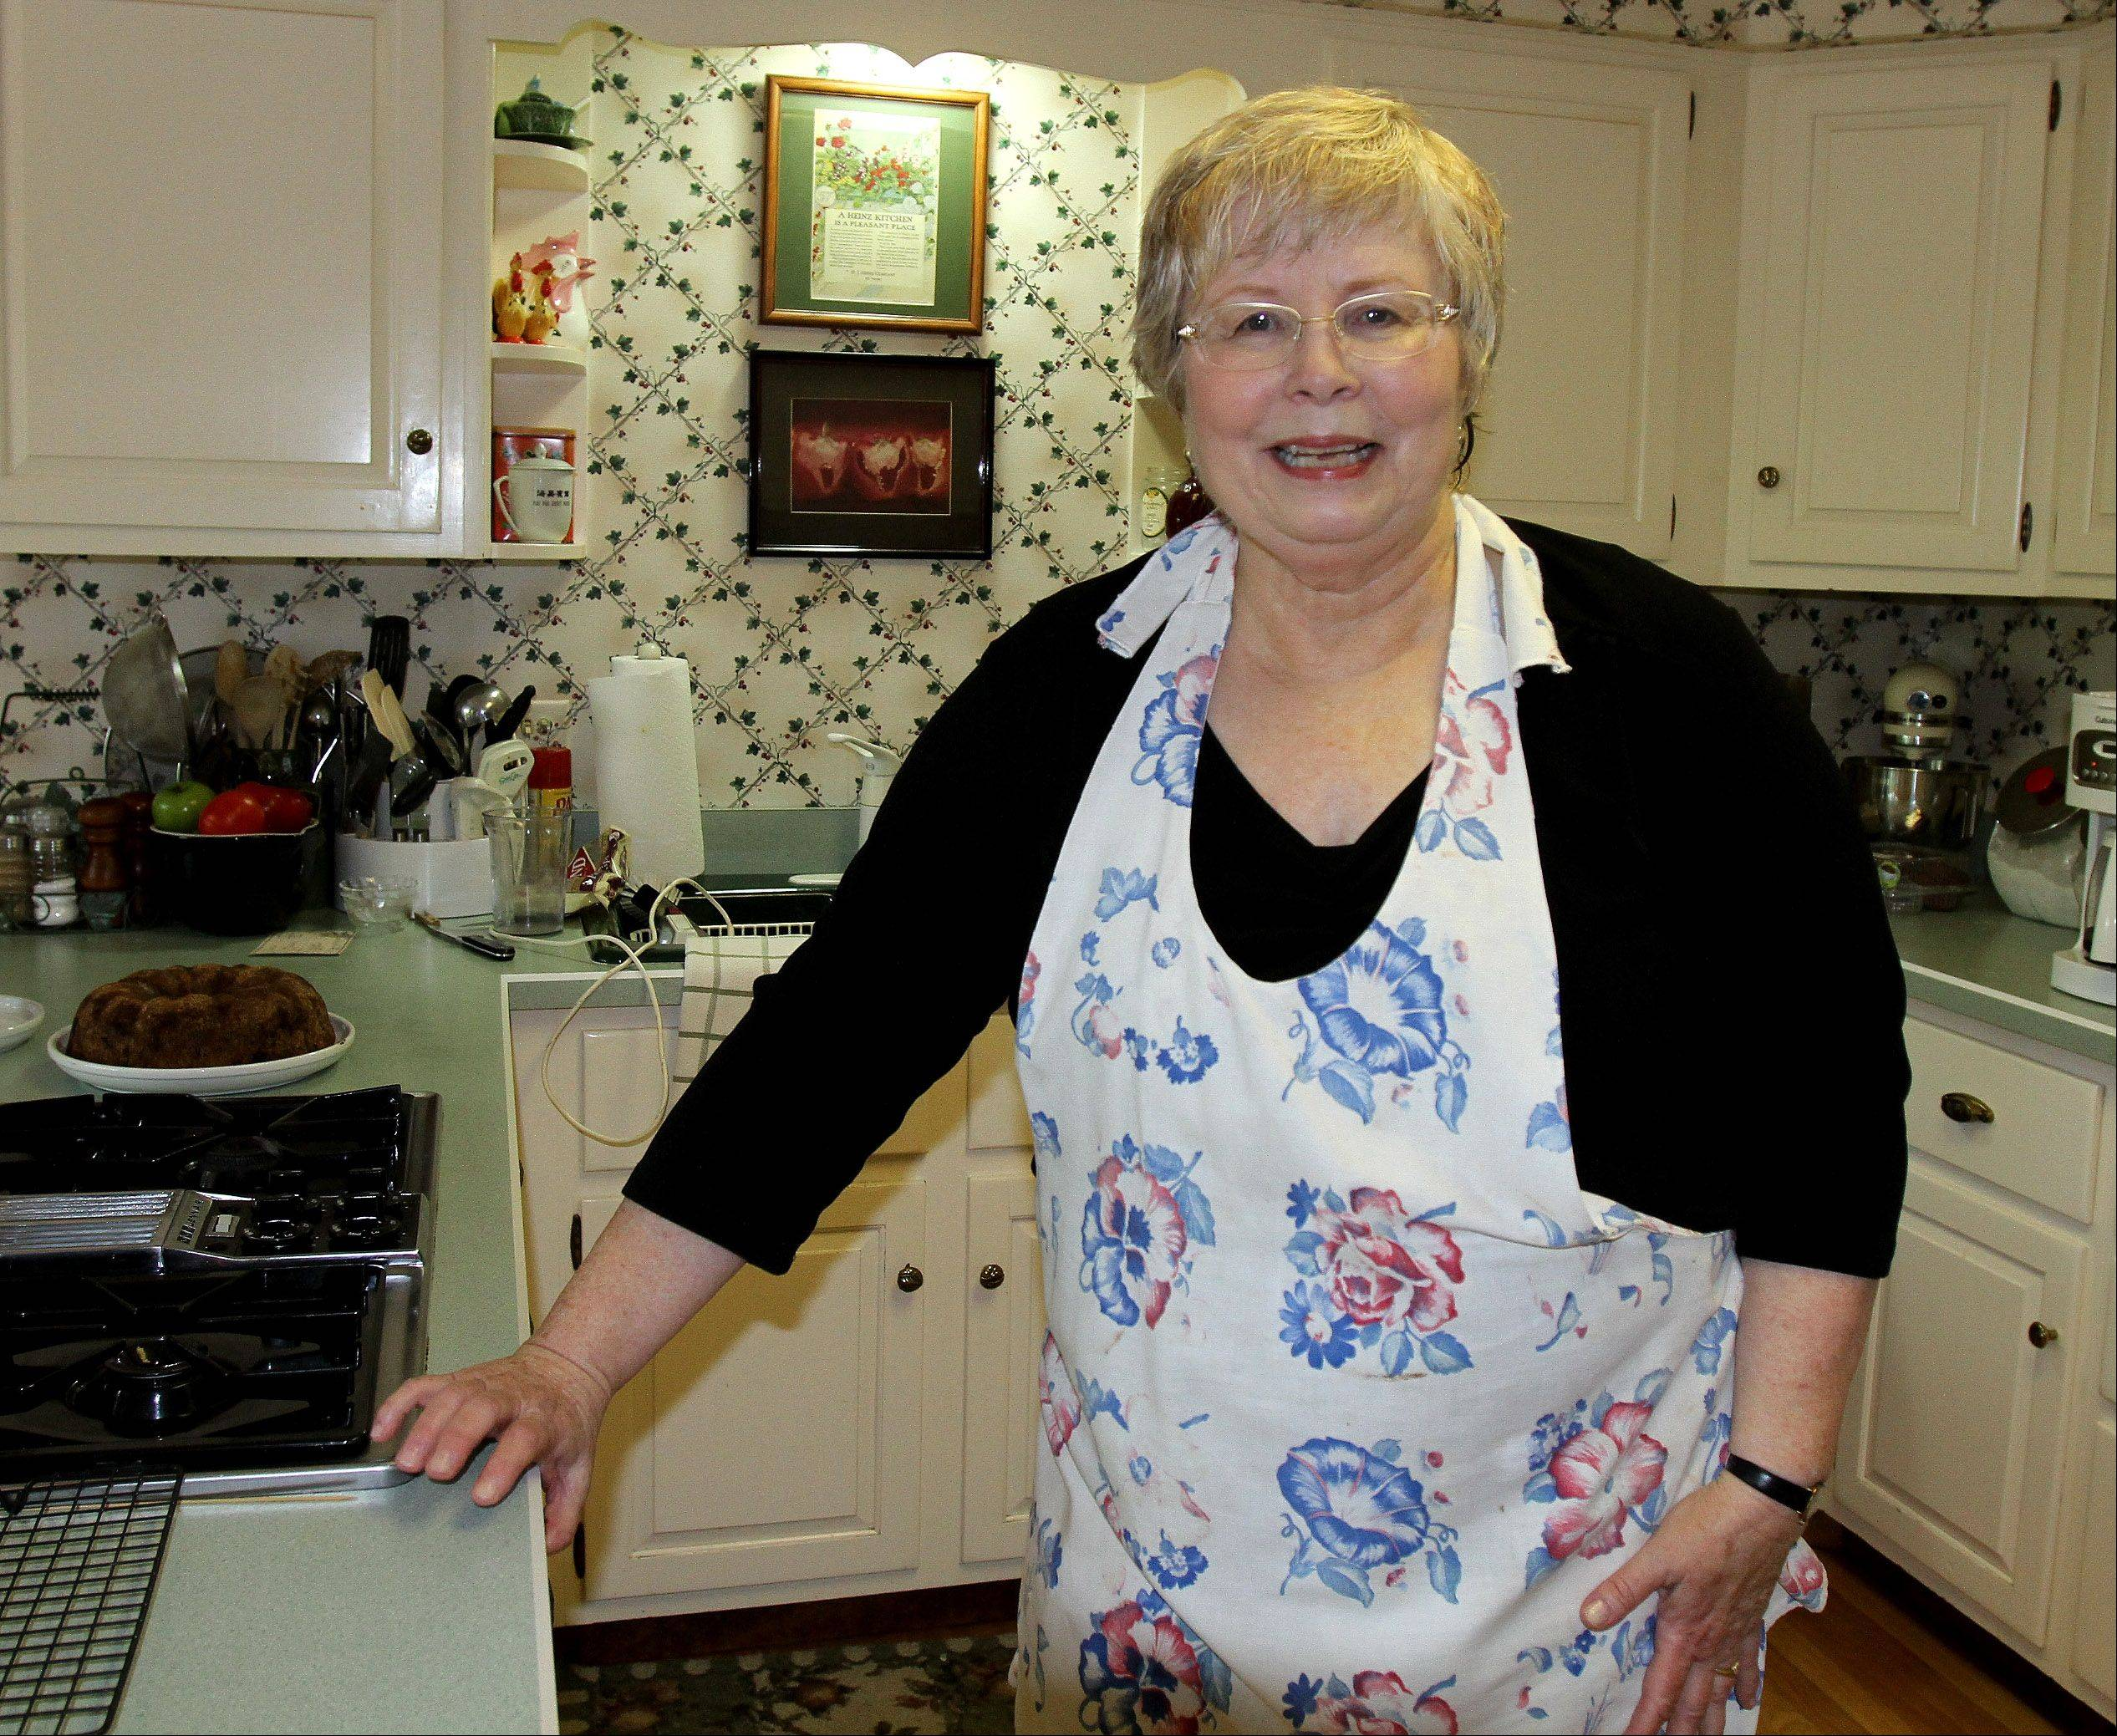 Sue Waskelis of Lisle loves trying new recipes and counts Cook�s Illustrated magazine as her go-to source.